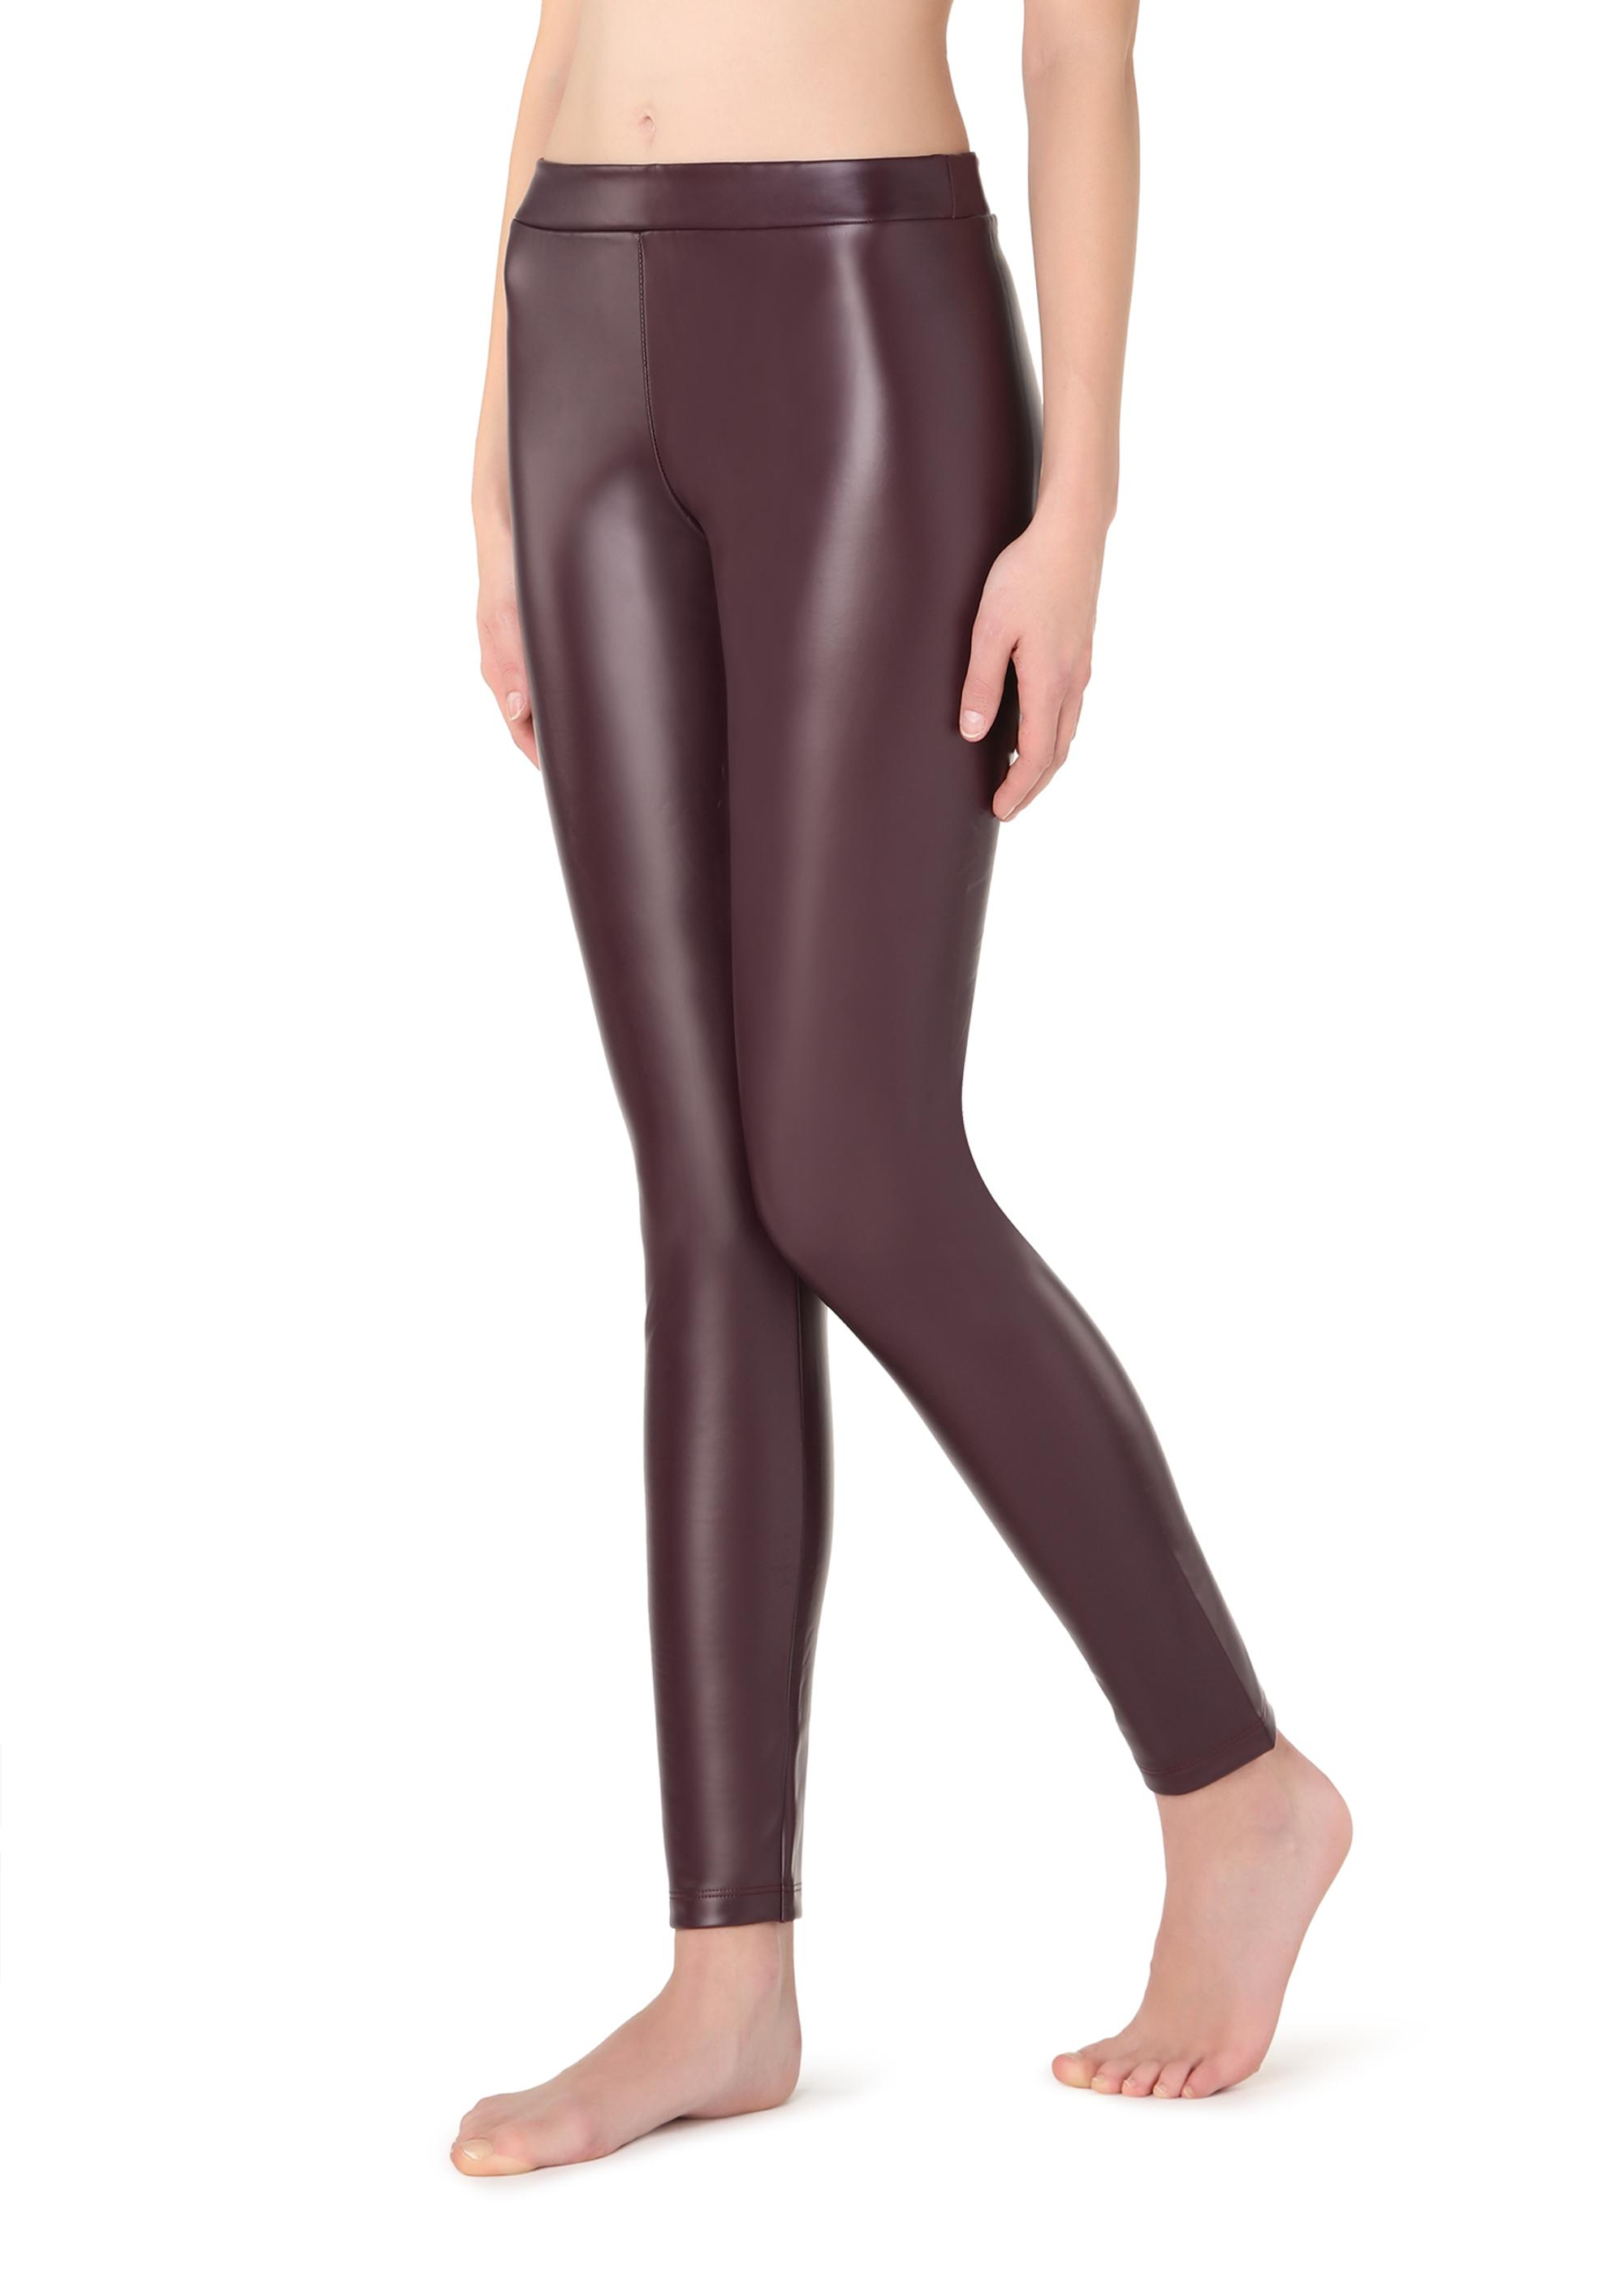 a5c746b751902 Thermal leather-effect leggings - Calzedonia